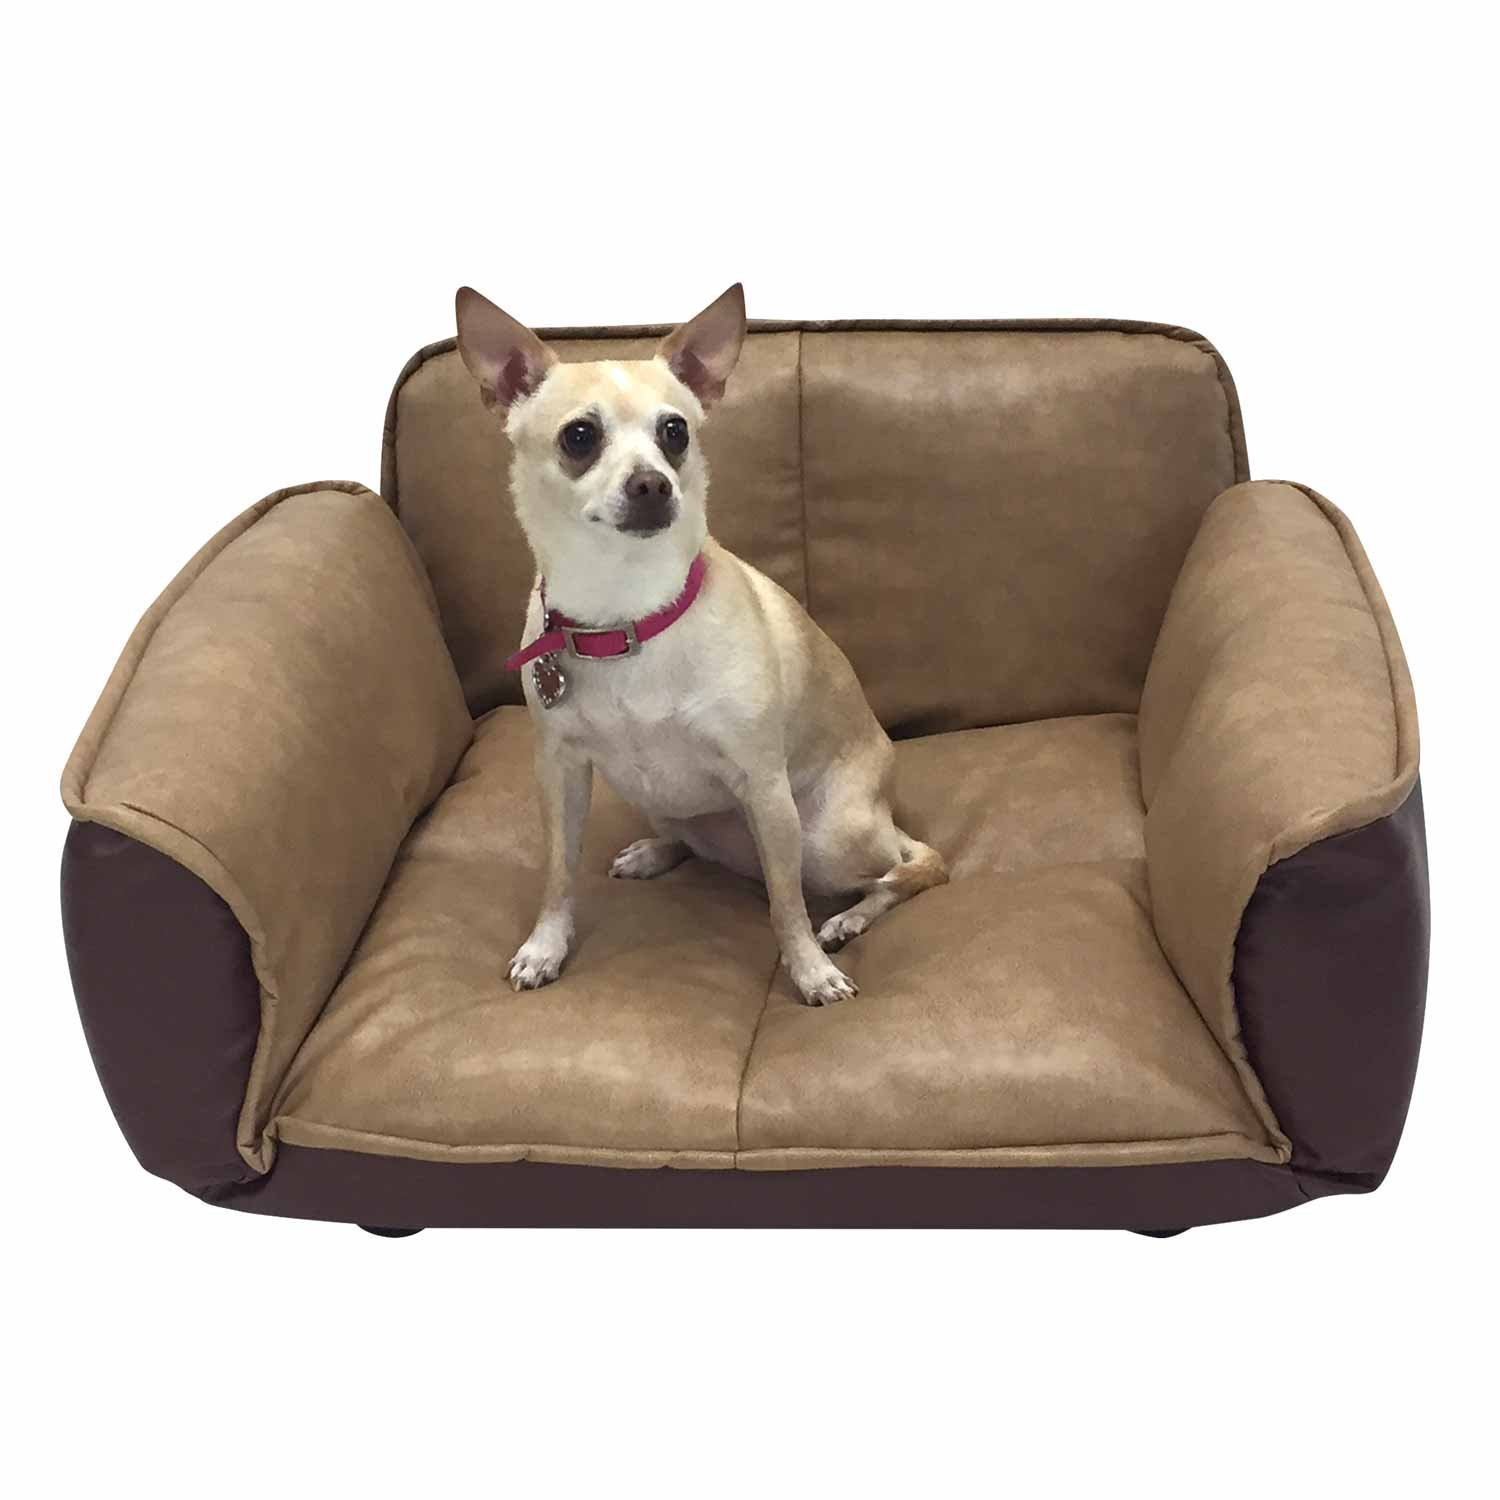 Top 5 Best Leather Dog Beds Reviews - Best top care with dogs